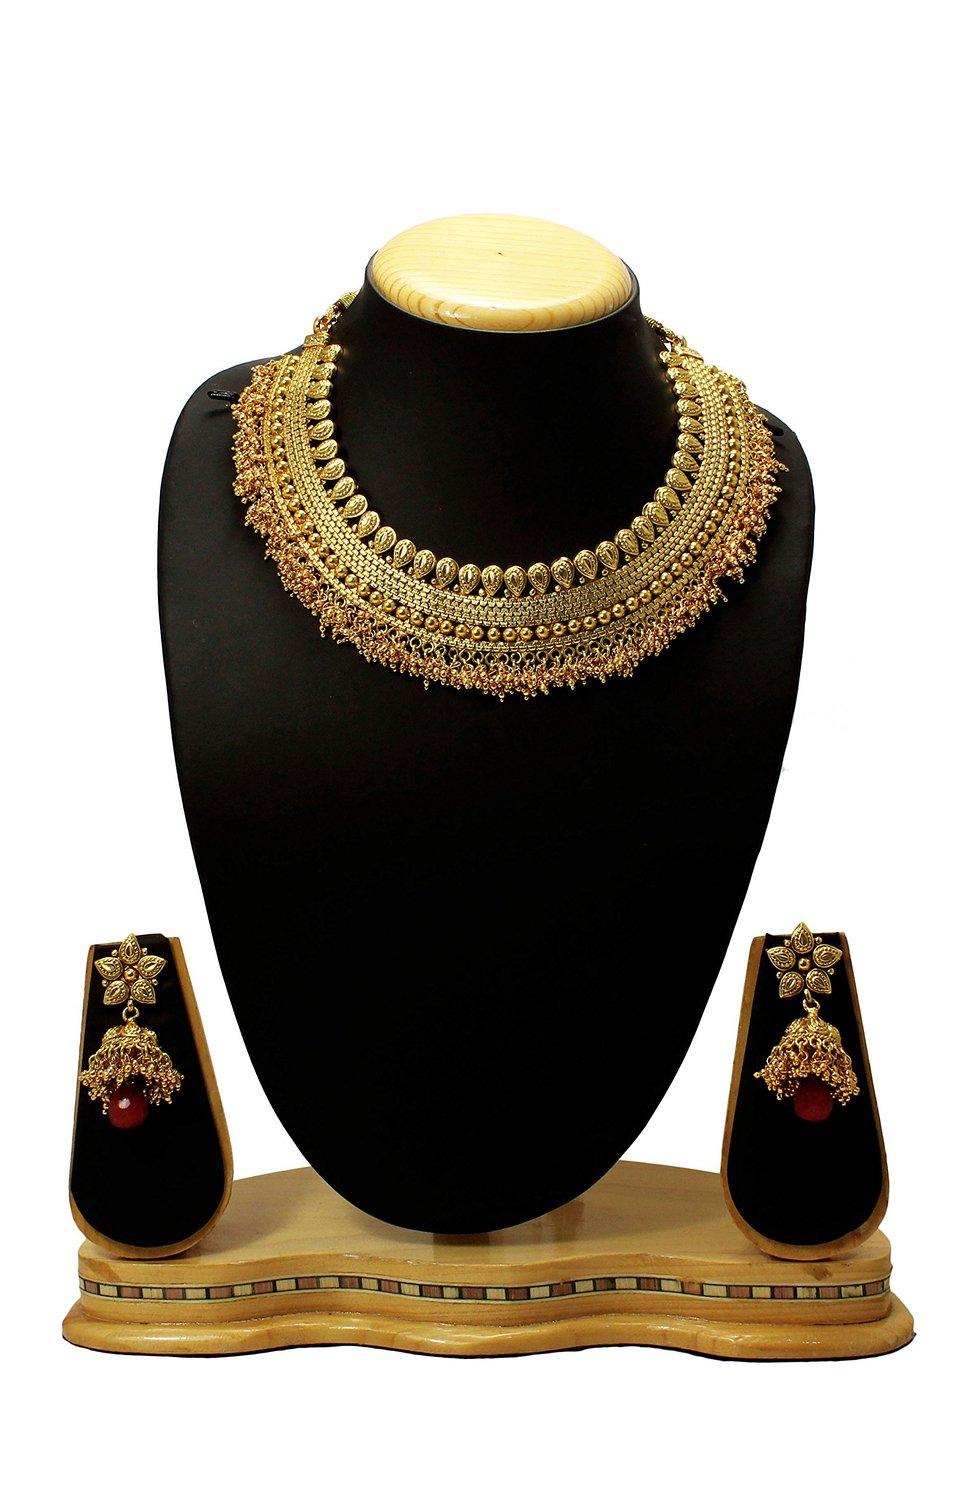 c3af21b546 Latest Indian Traditional & Antique Design One Gram Gold Bridal Jewellery  Necklace Set - Satyam Jewellery NX - 691490